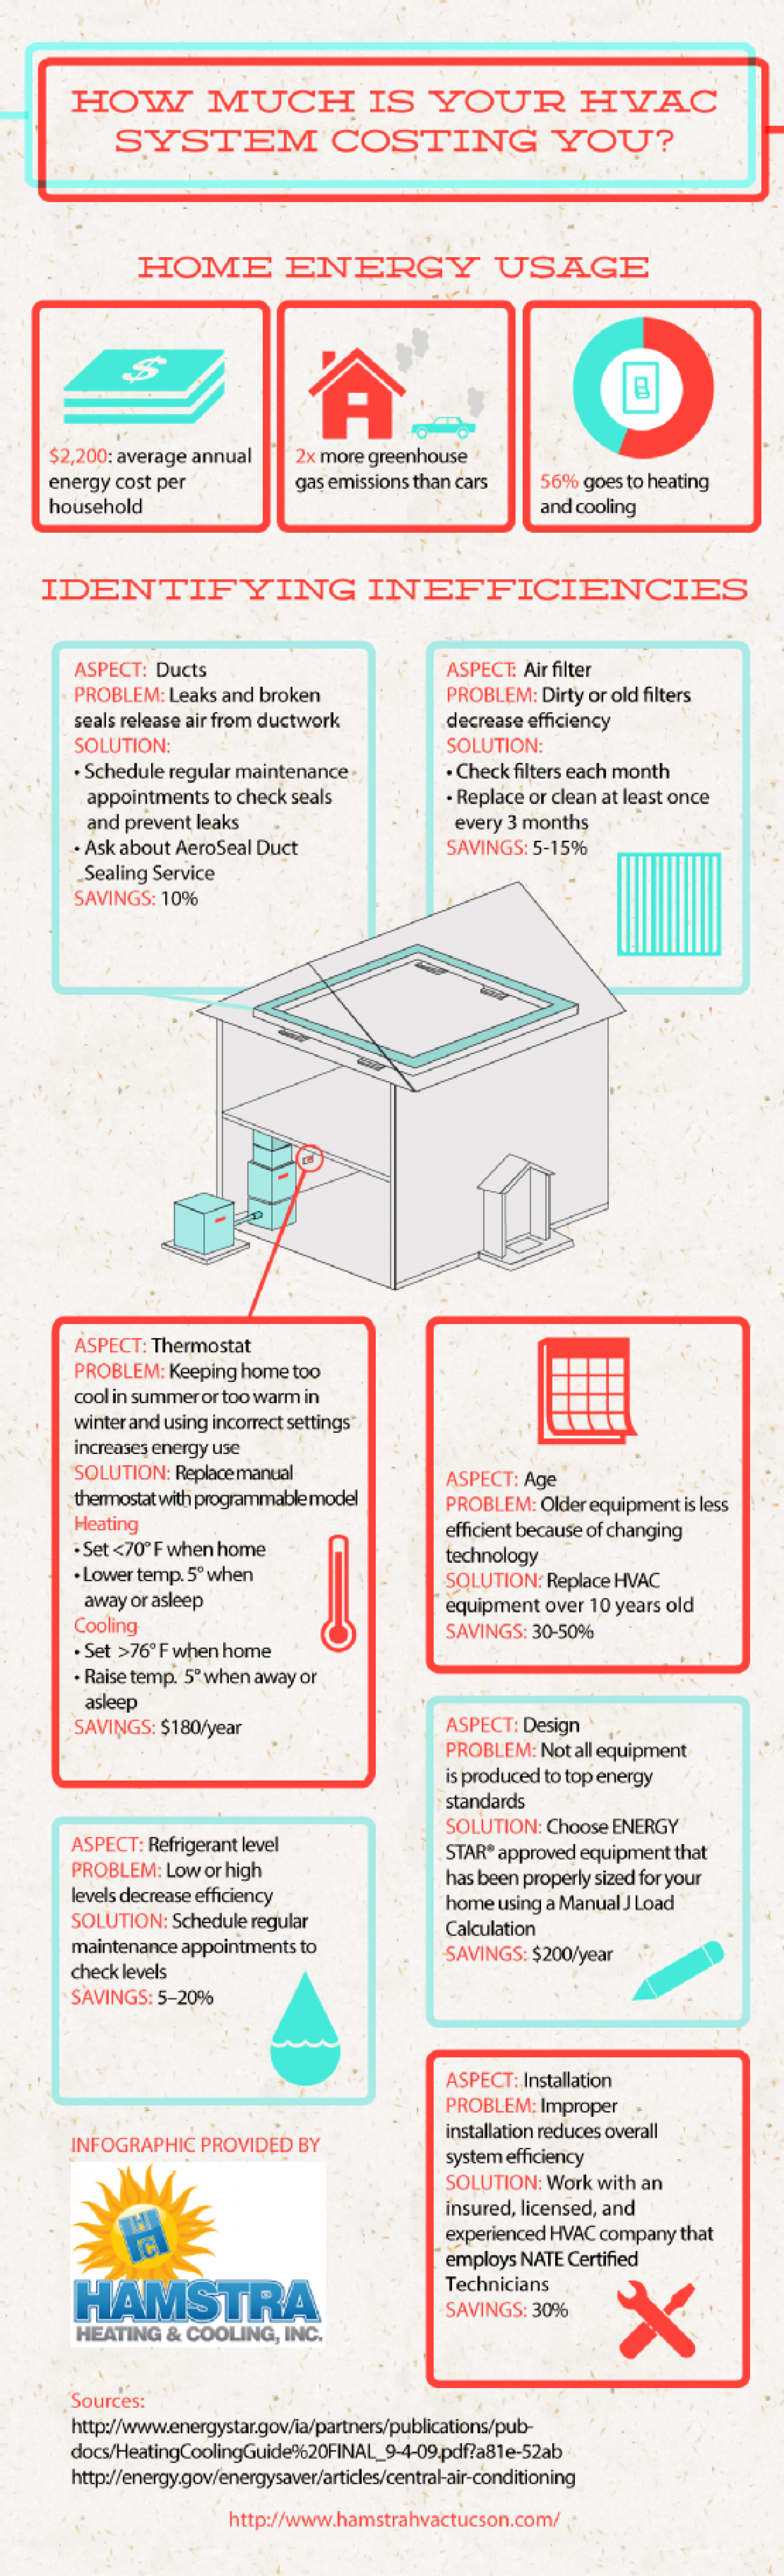 How Much Is Your HVAC System Costing You? Infographic